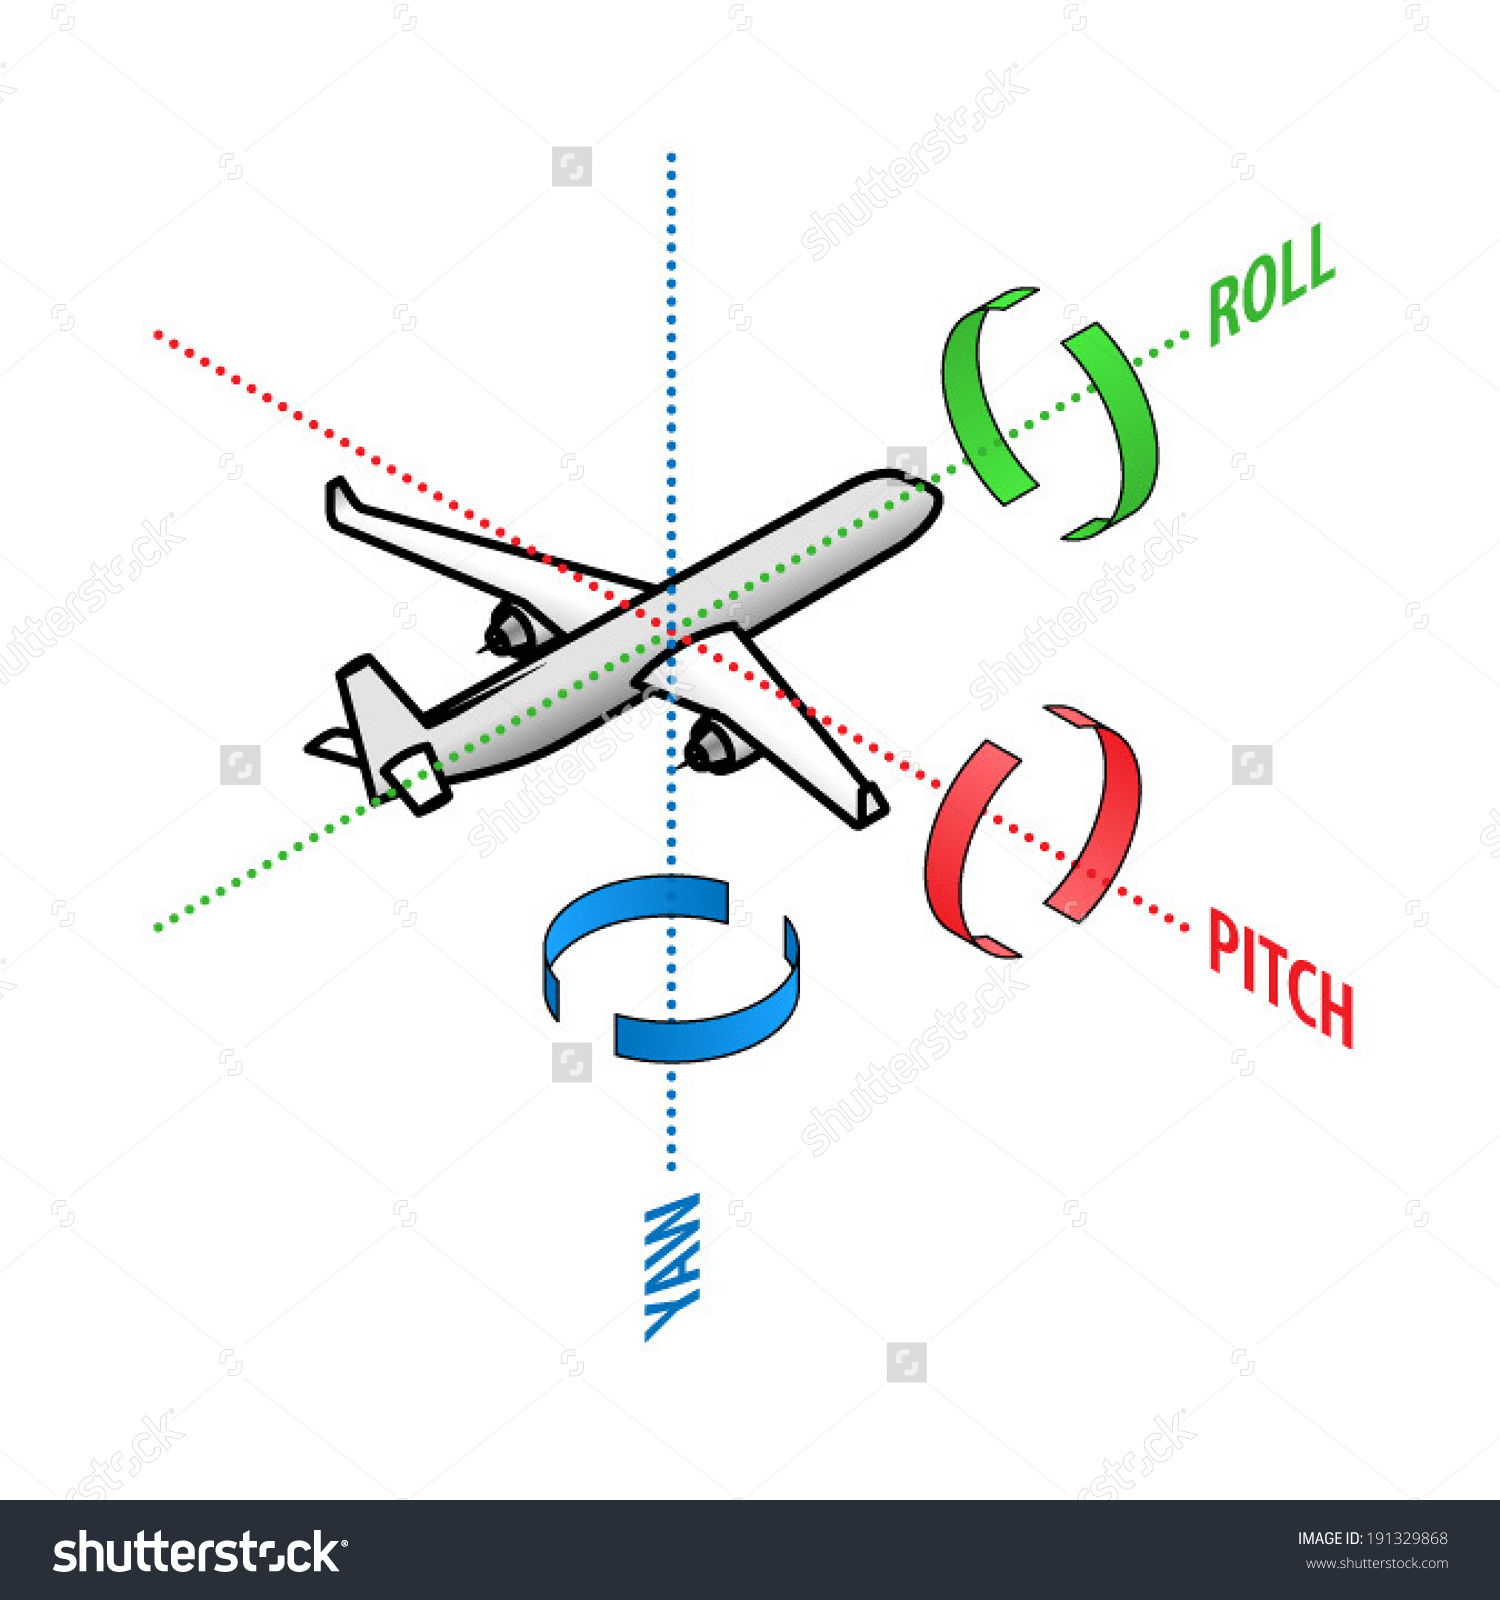 Yaw plane clipart png library library Aviation Concept Axis Movement Three Dimensional Stock Vector ... png library library